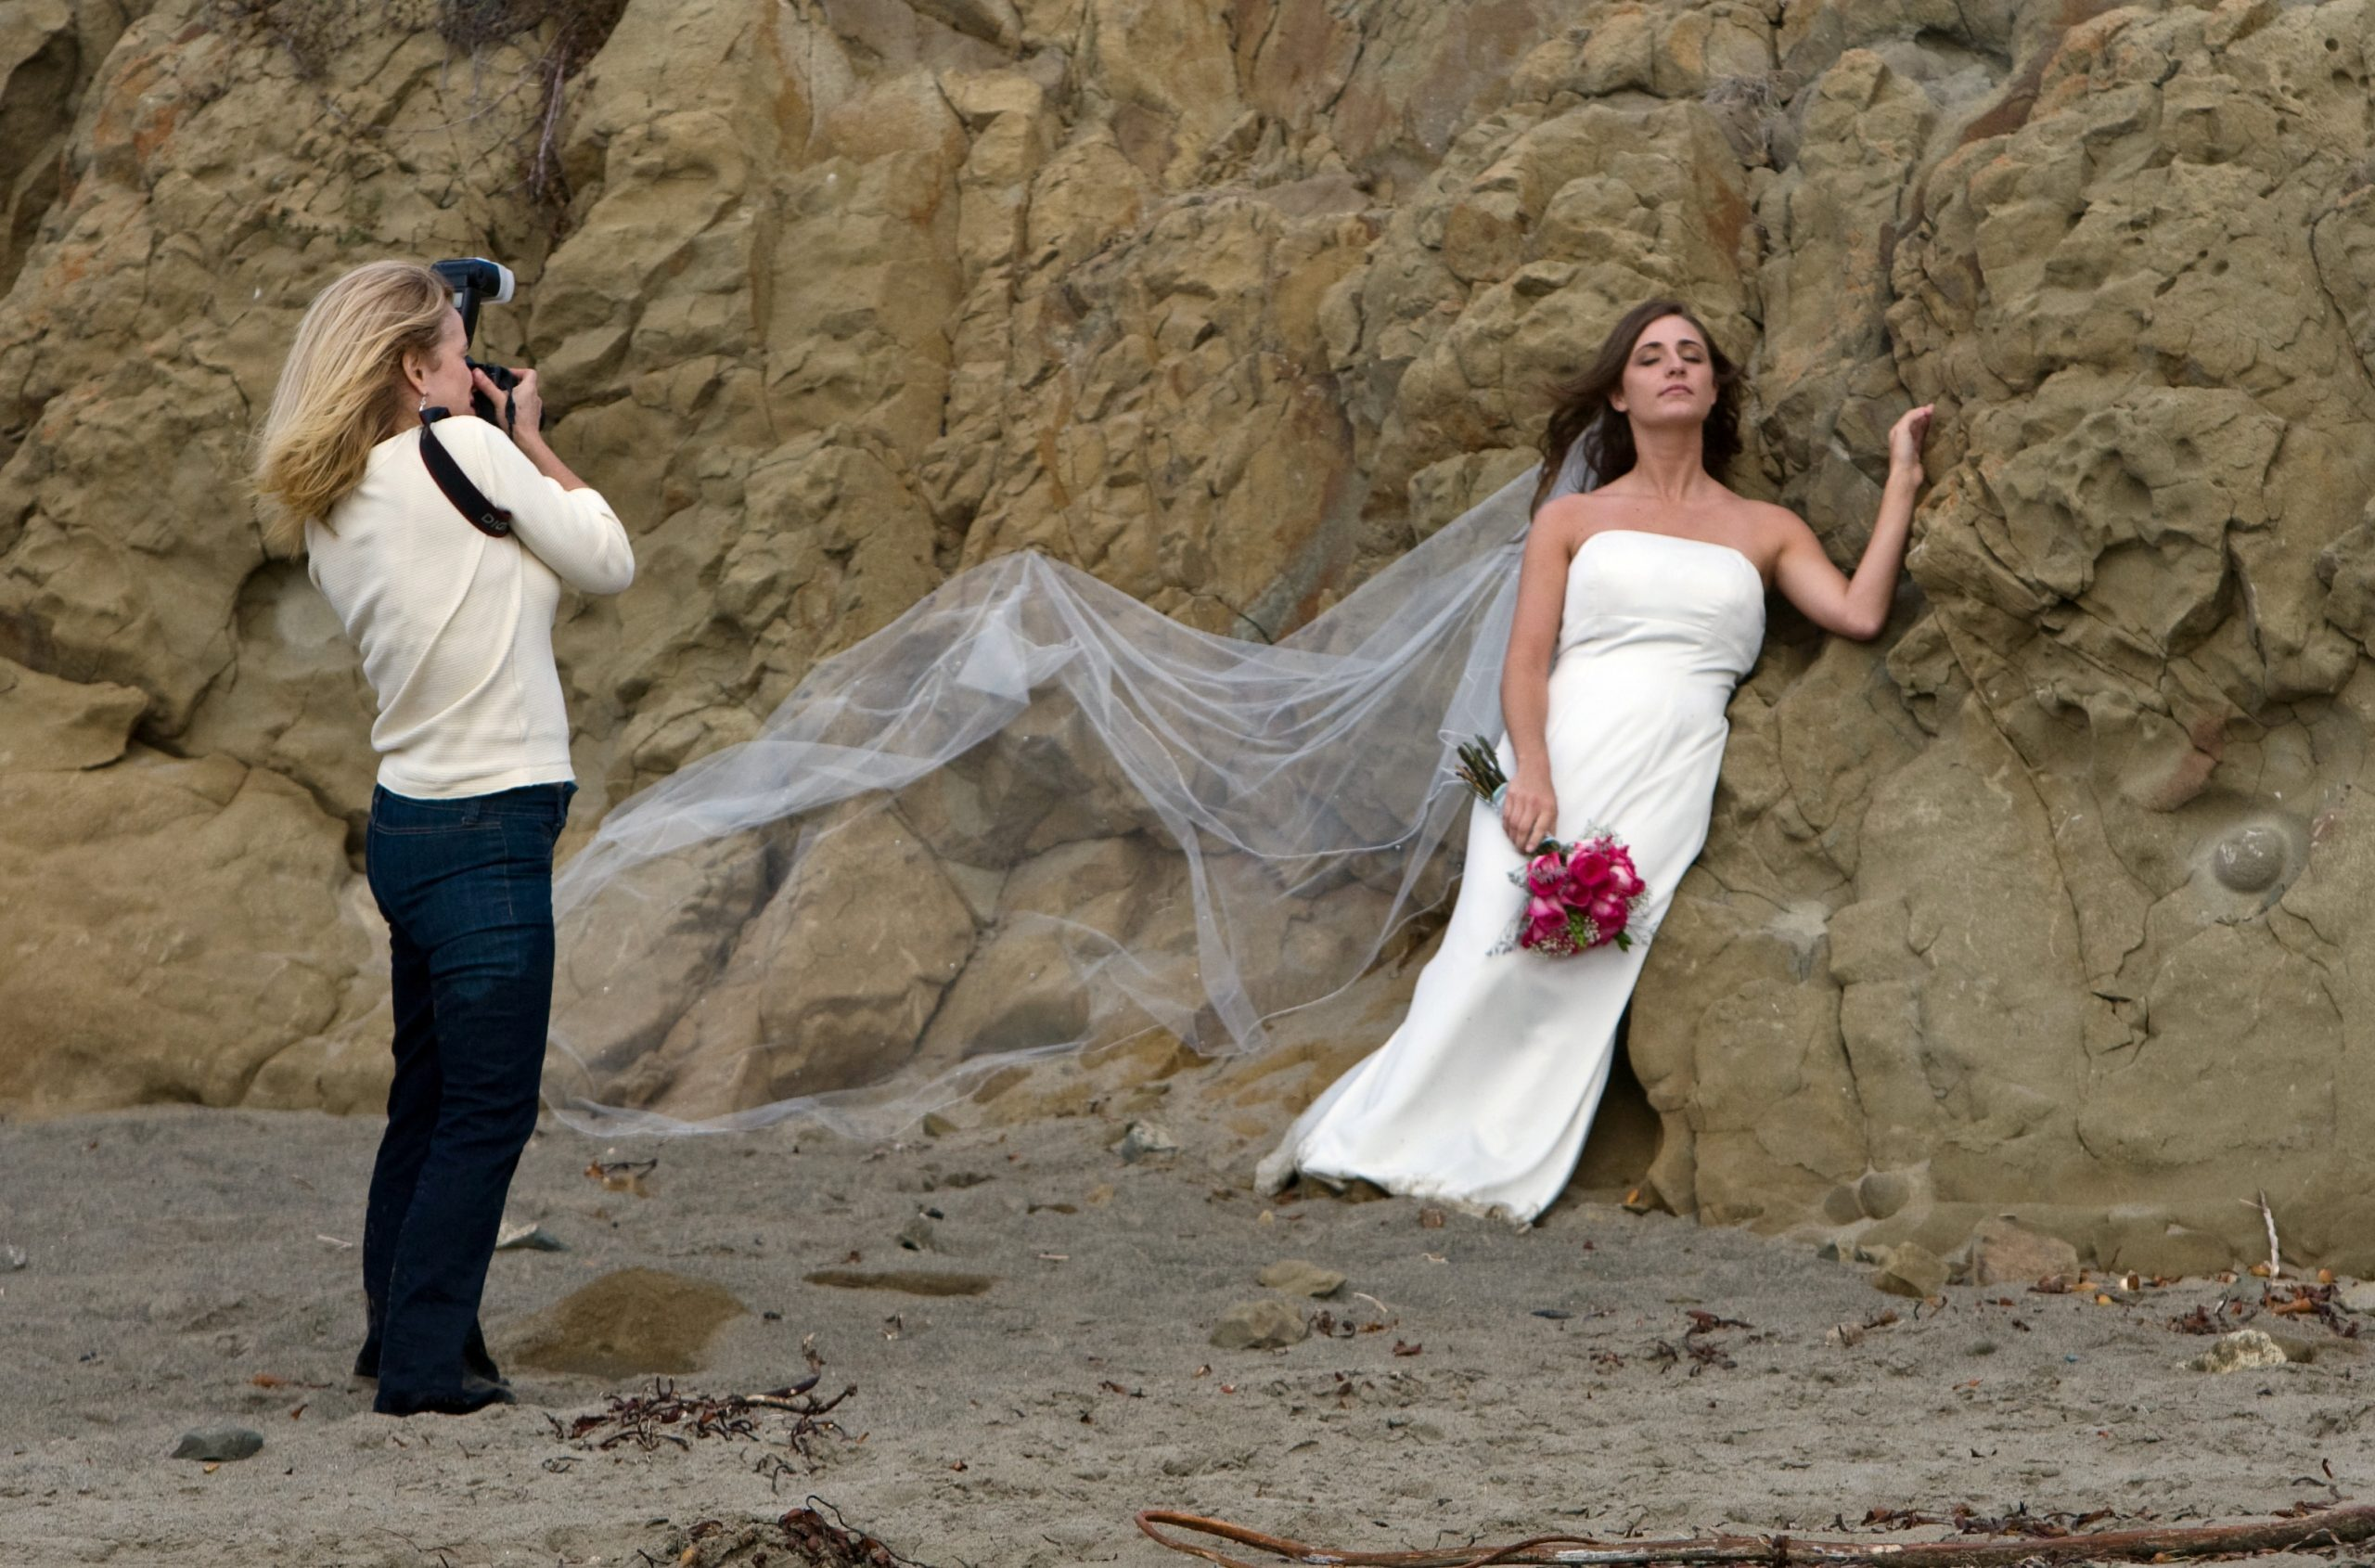 wedding_photographer_preparing_shot-1551884